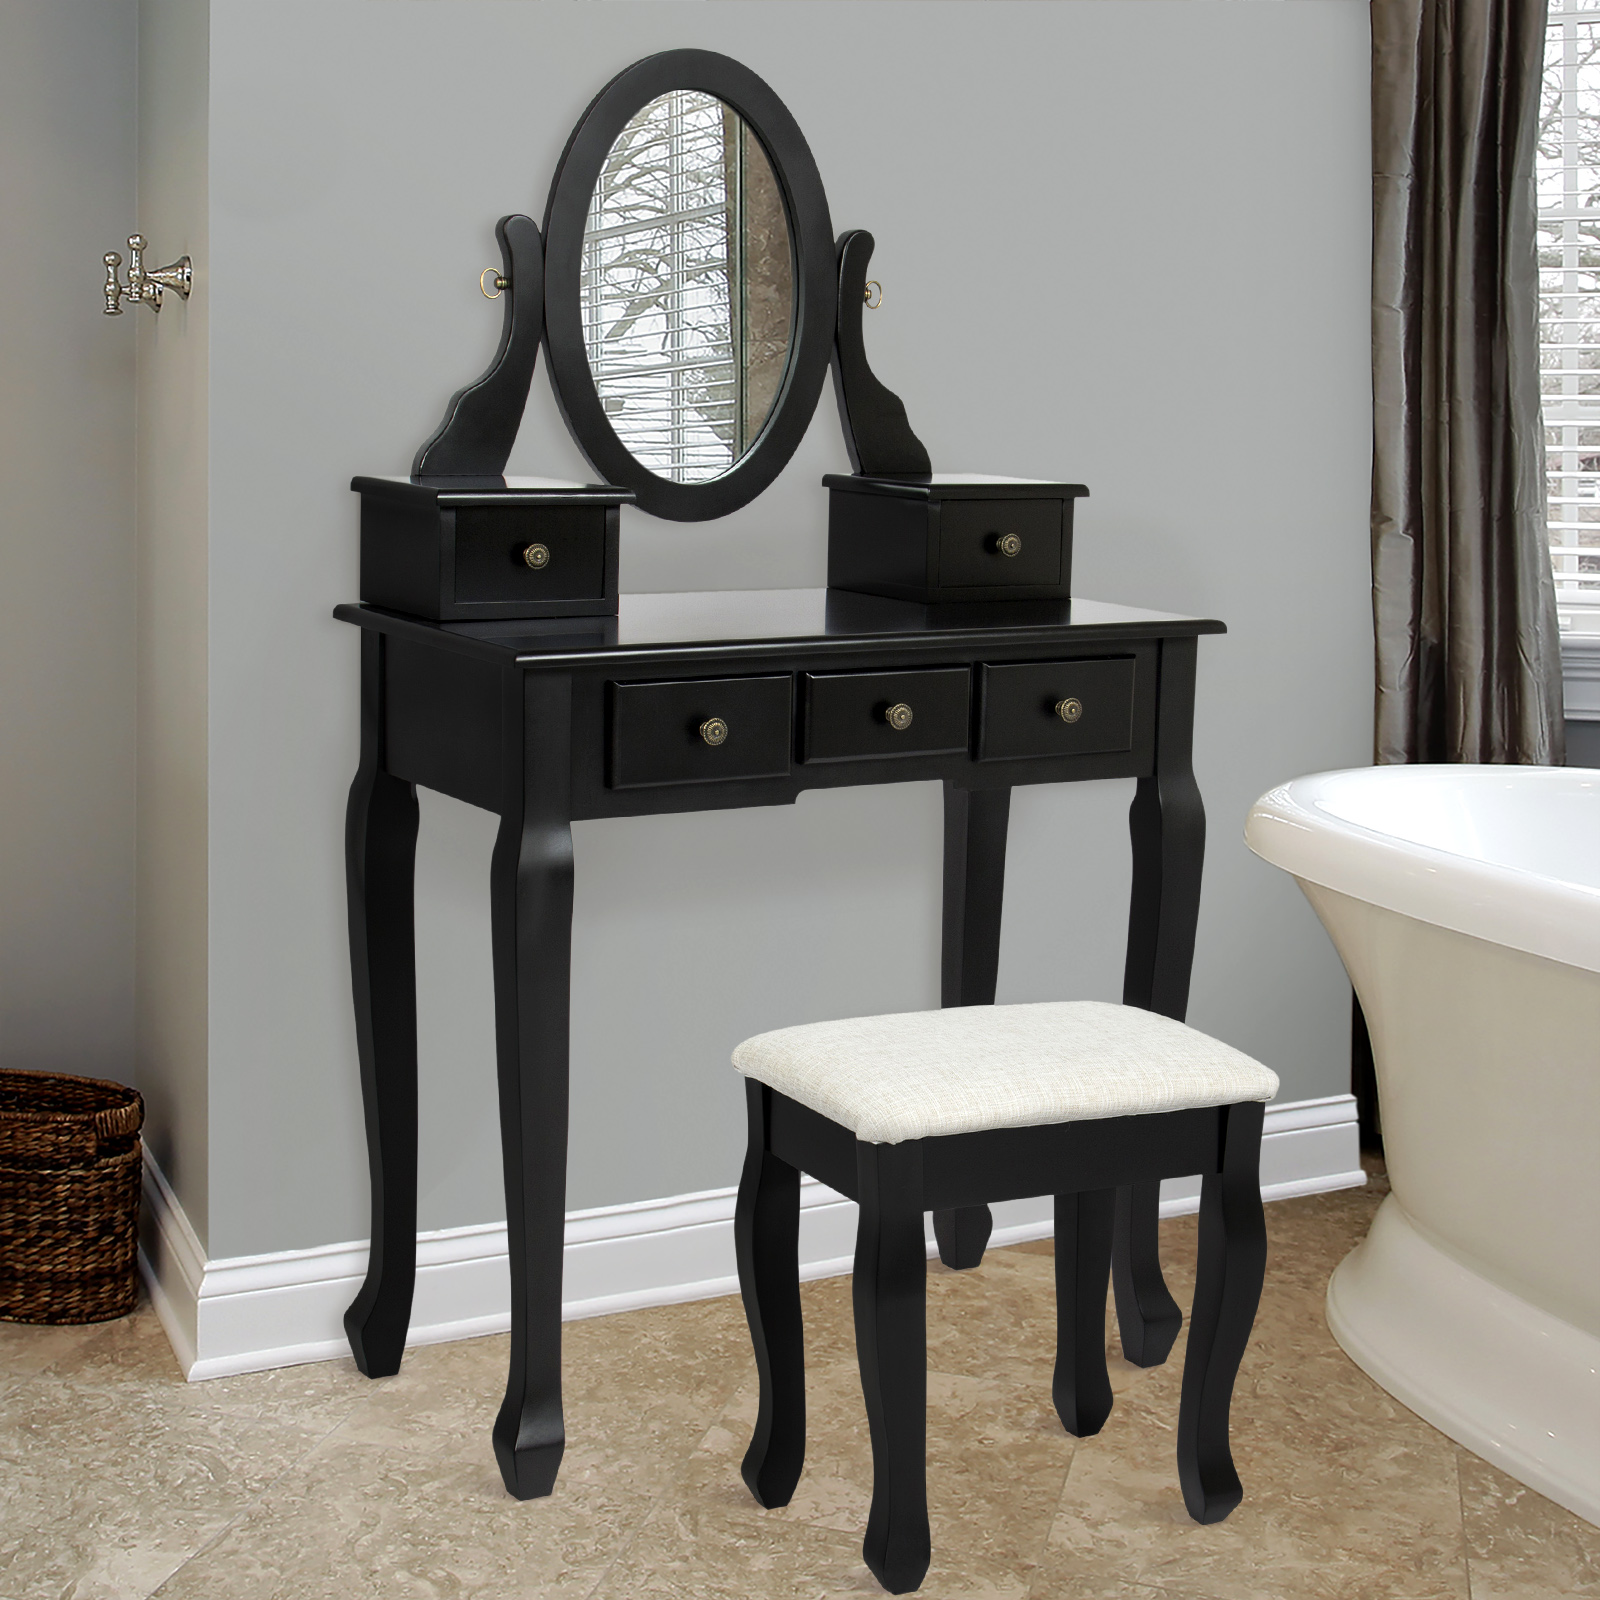 Bathroom Vanity Table Jewelry Makeup Desk Bench Drawer Black Hair Dressing Organizer New by